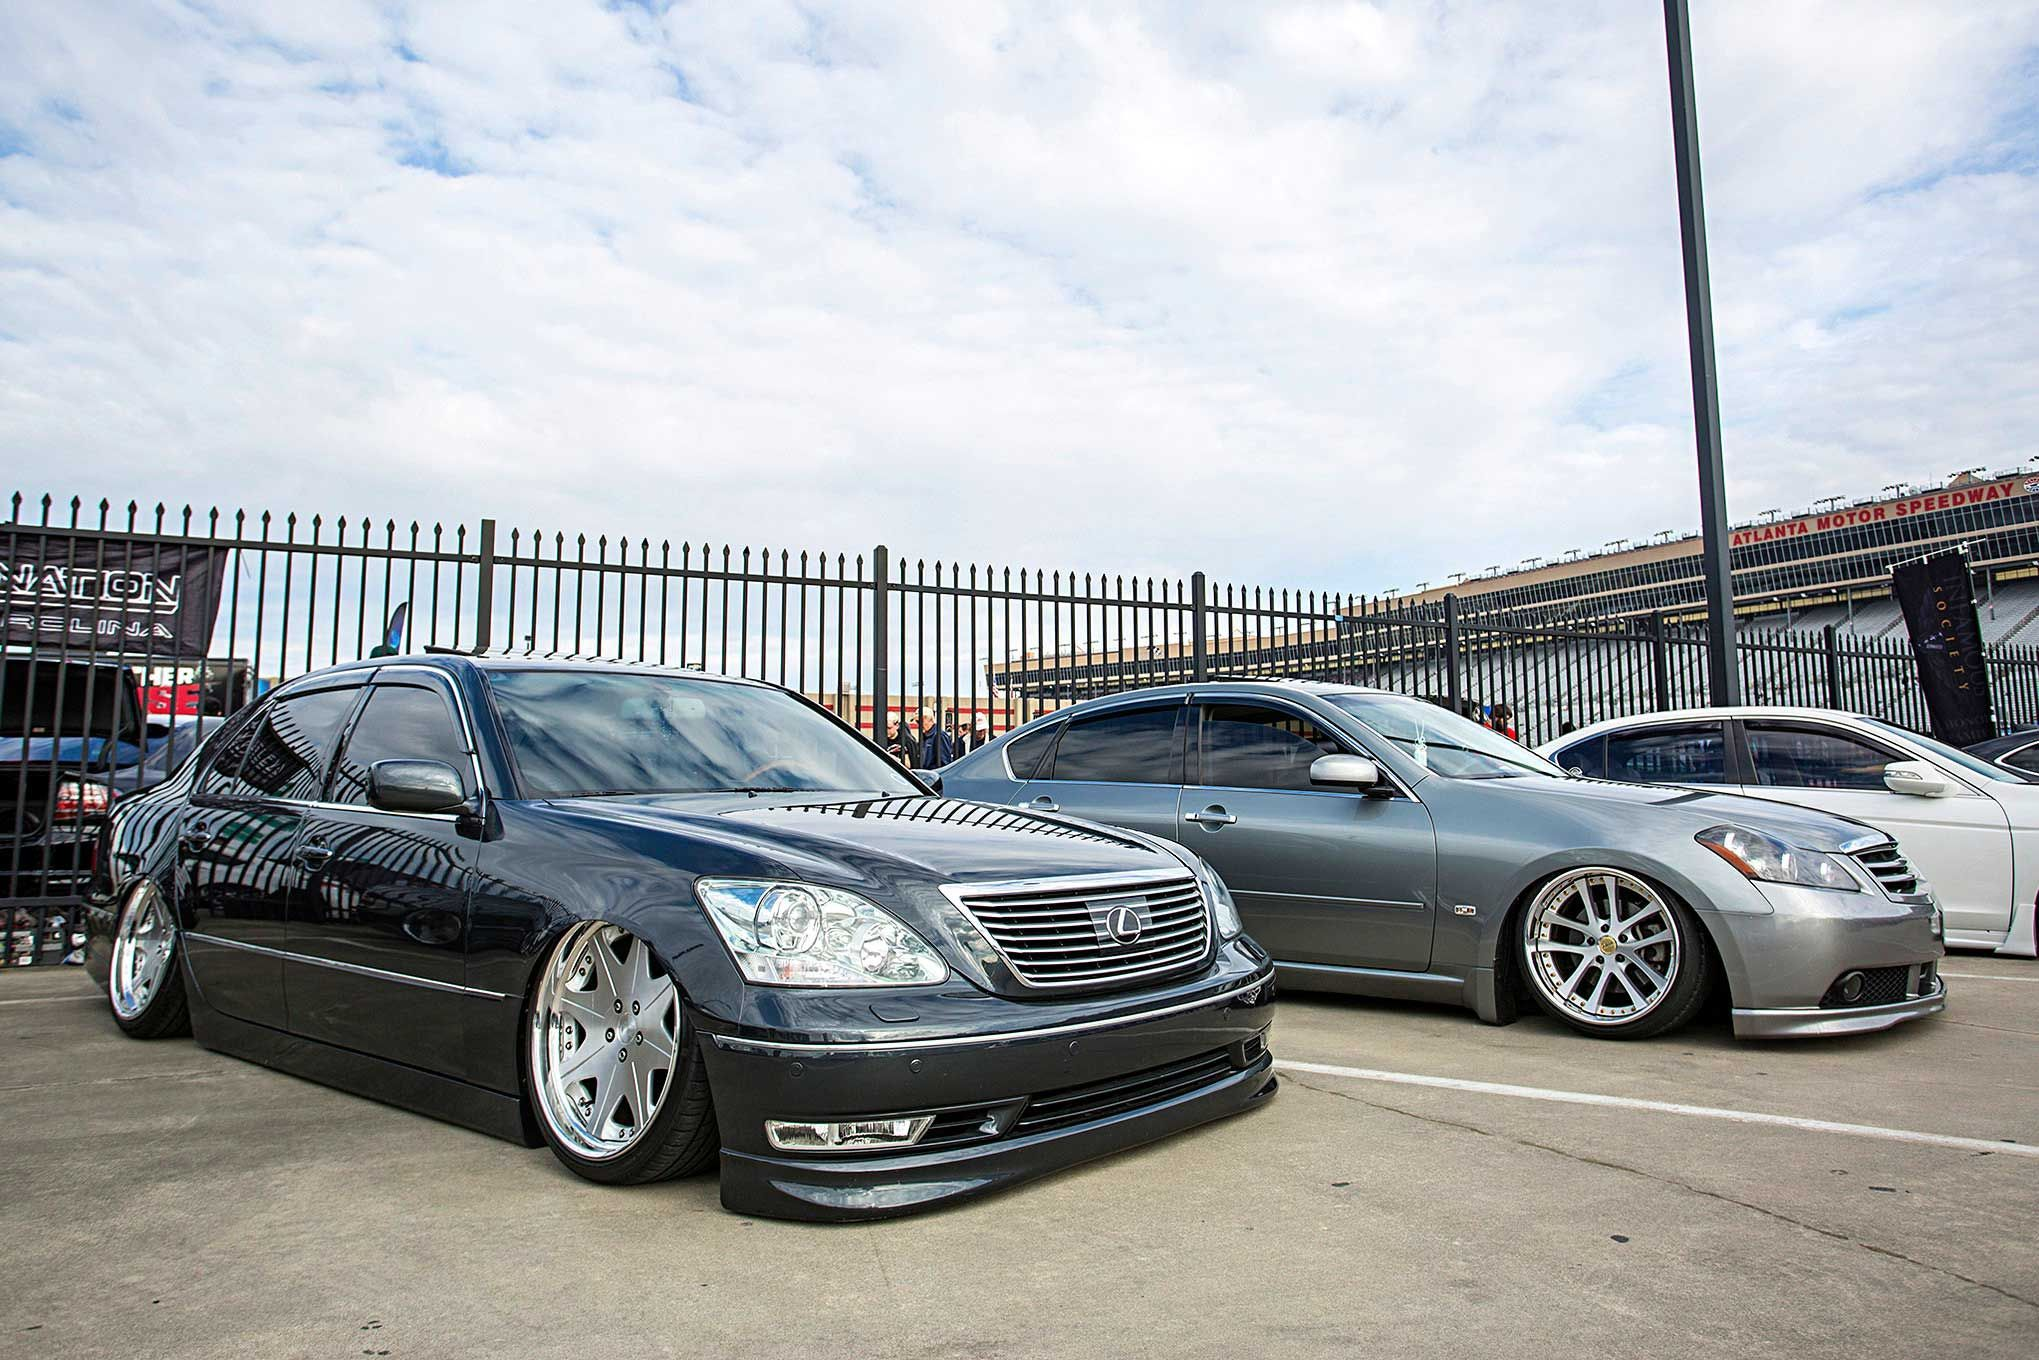 Import Alliance Spring Meet 2020.The Biggest Car Show On The East Coast This Year Was In